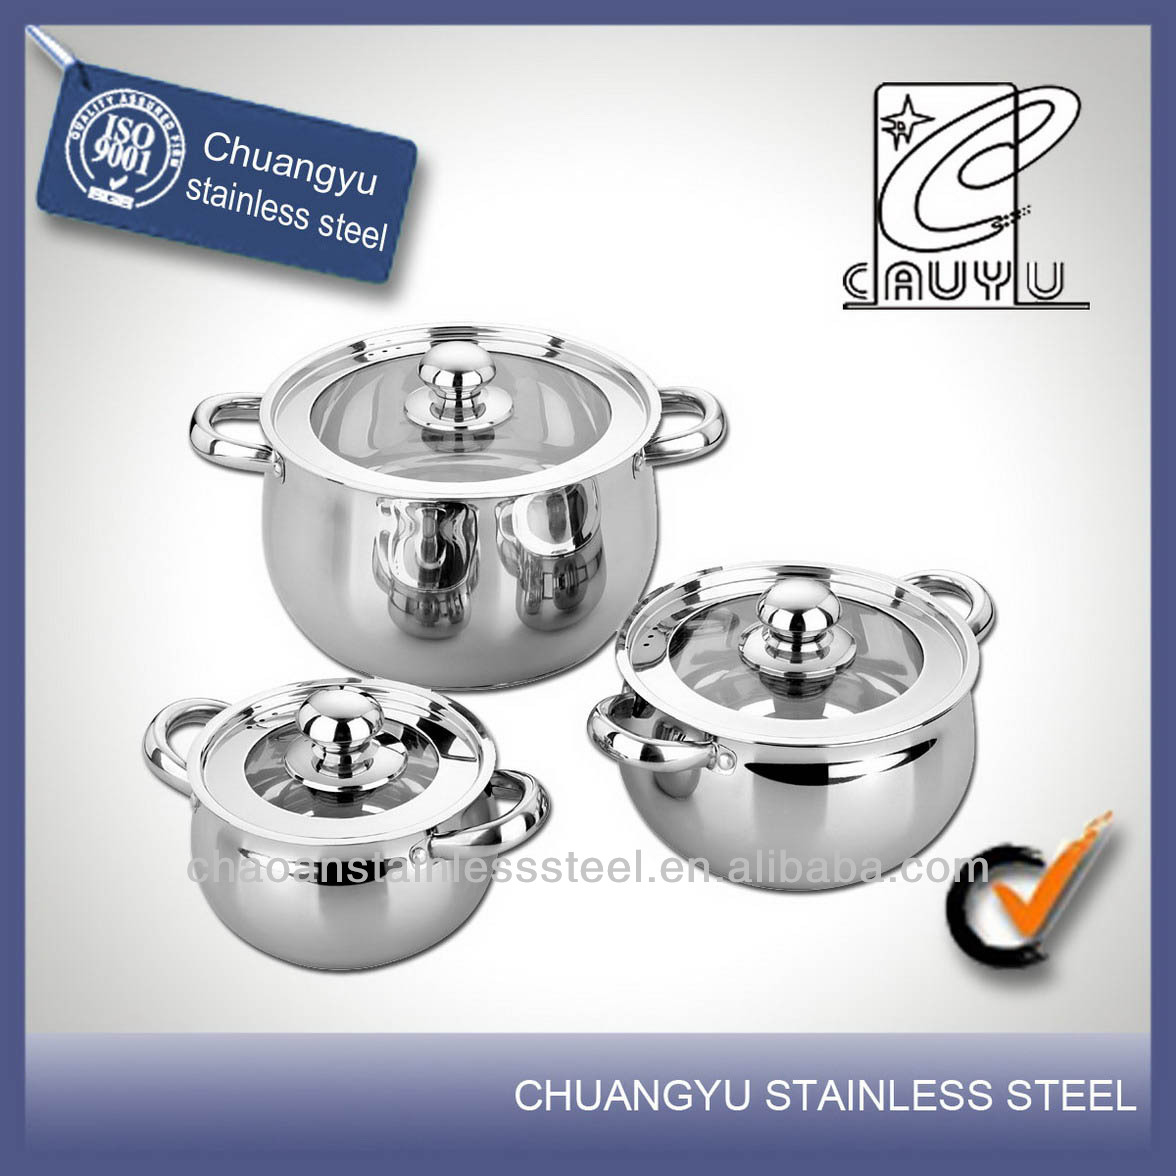 Stainless Steel Majestic Cookware Set, Stainless Steel Majestic ...